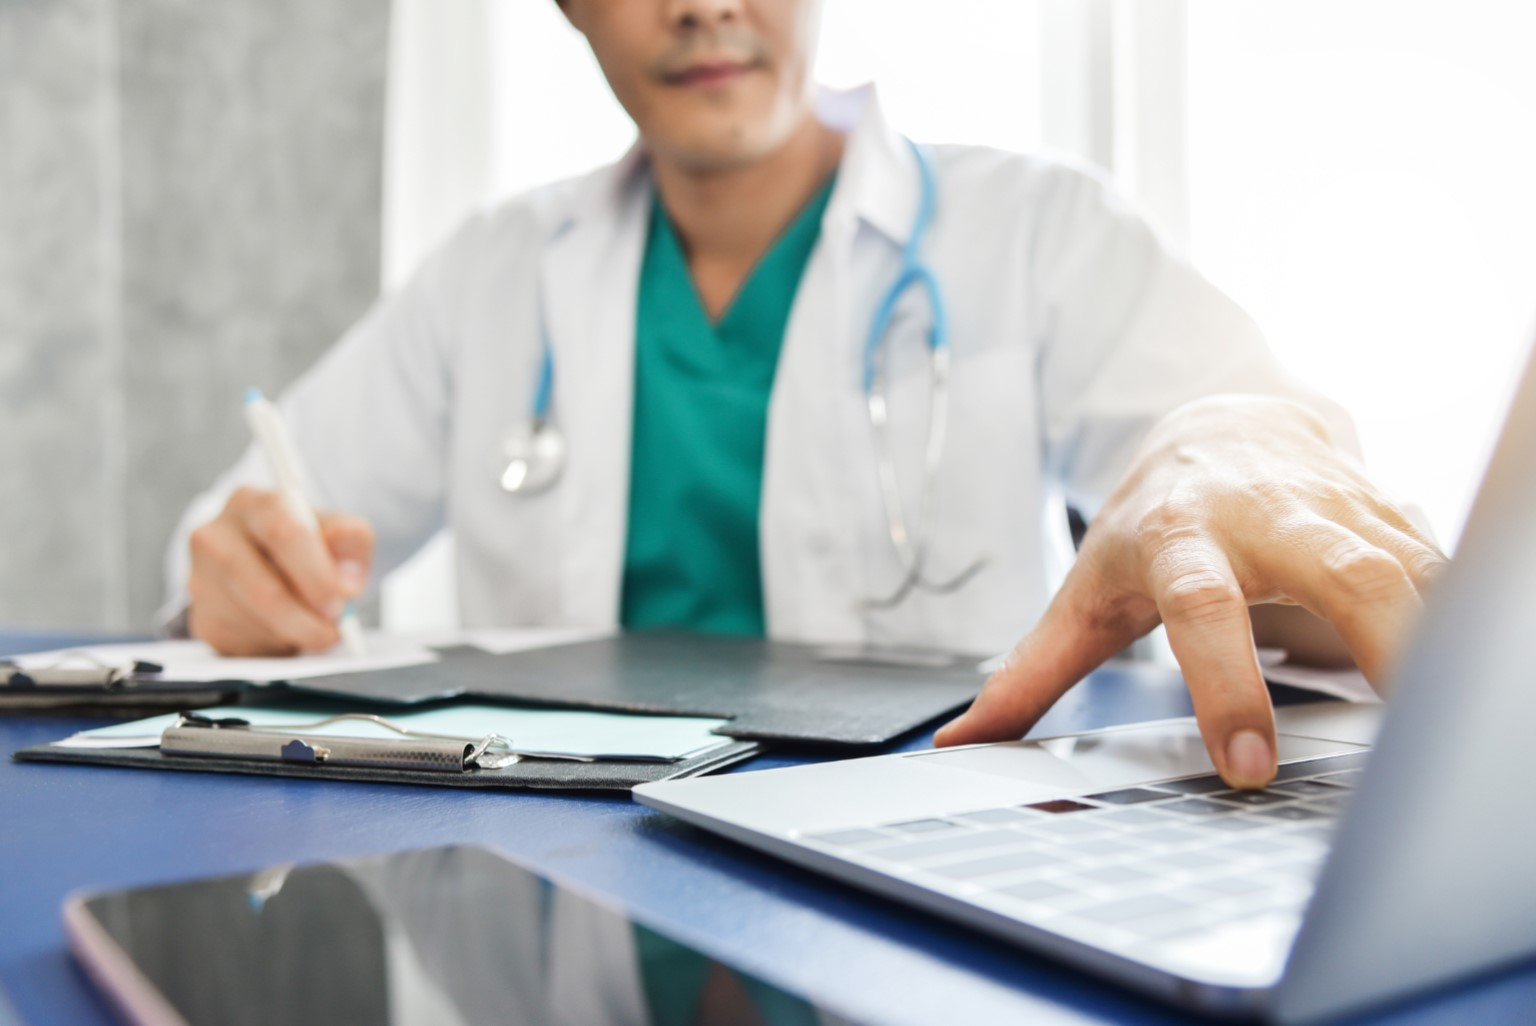 Young-Asian-male-Doctor-thinking-and-working-with-laptop-at-a-hospital-Medical-and-health-care-conce